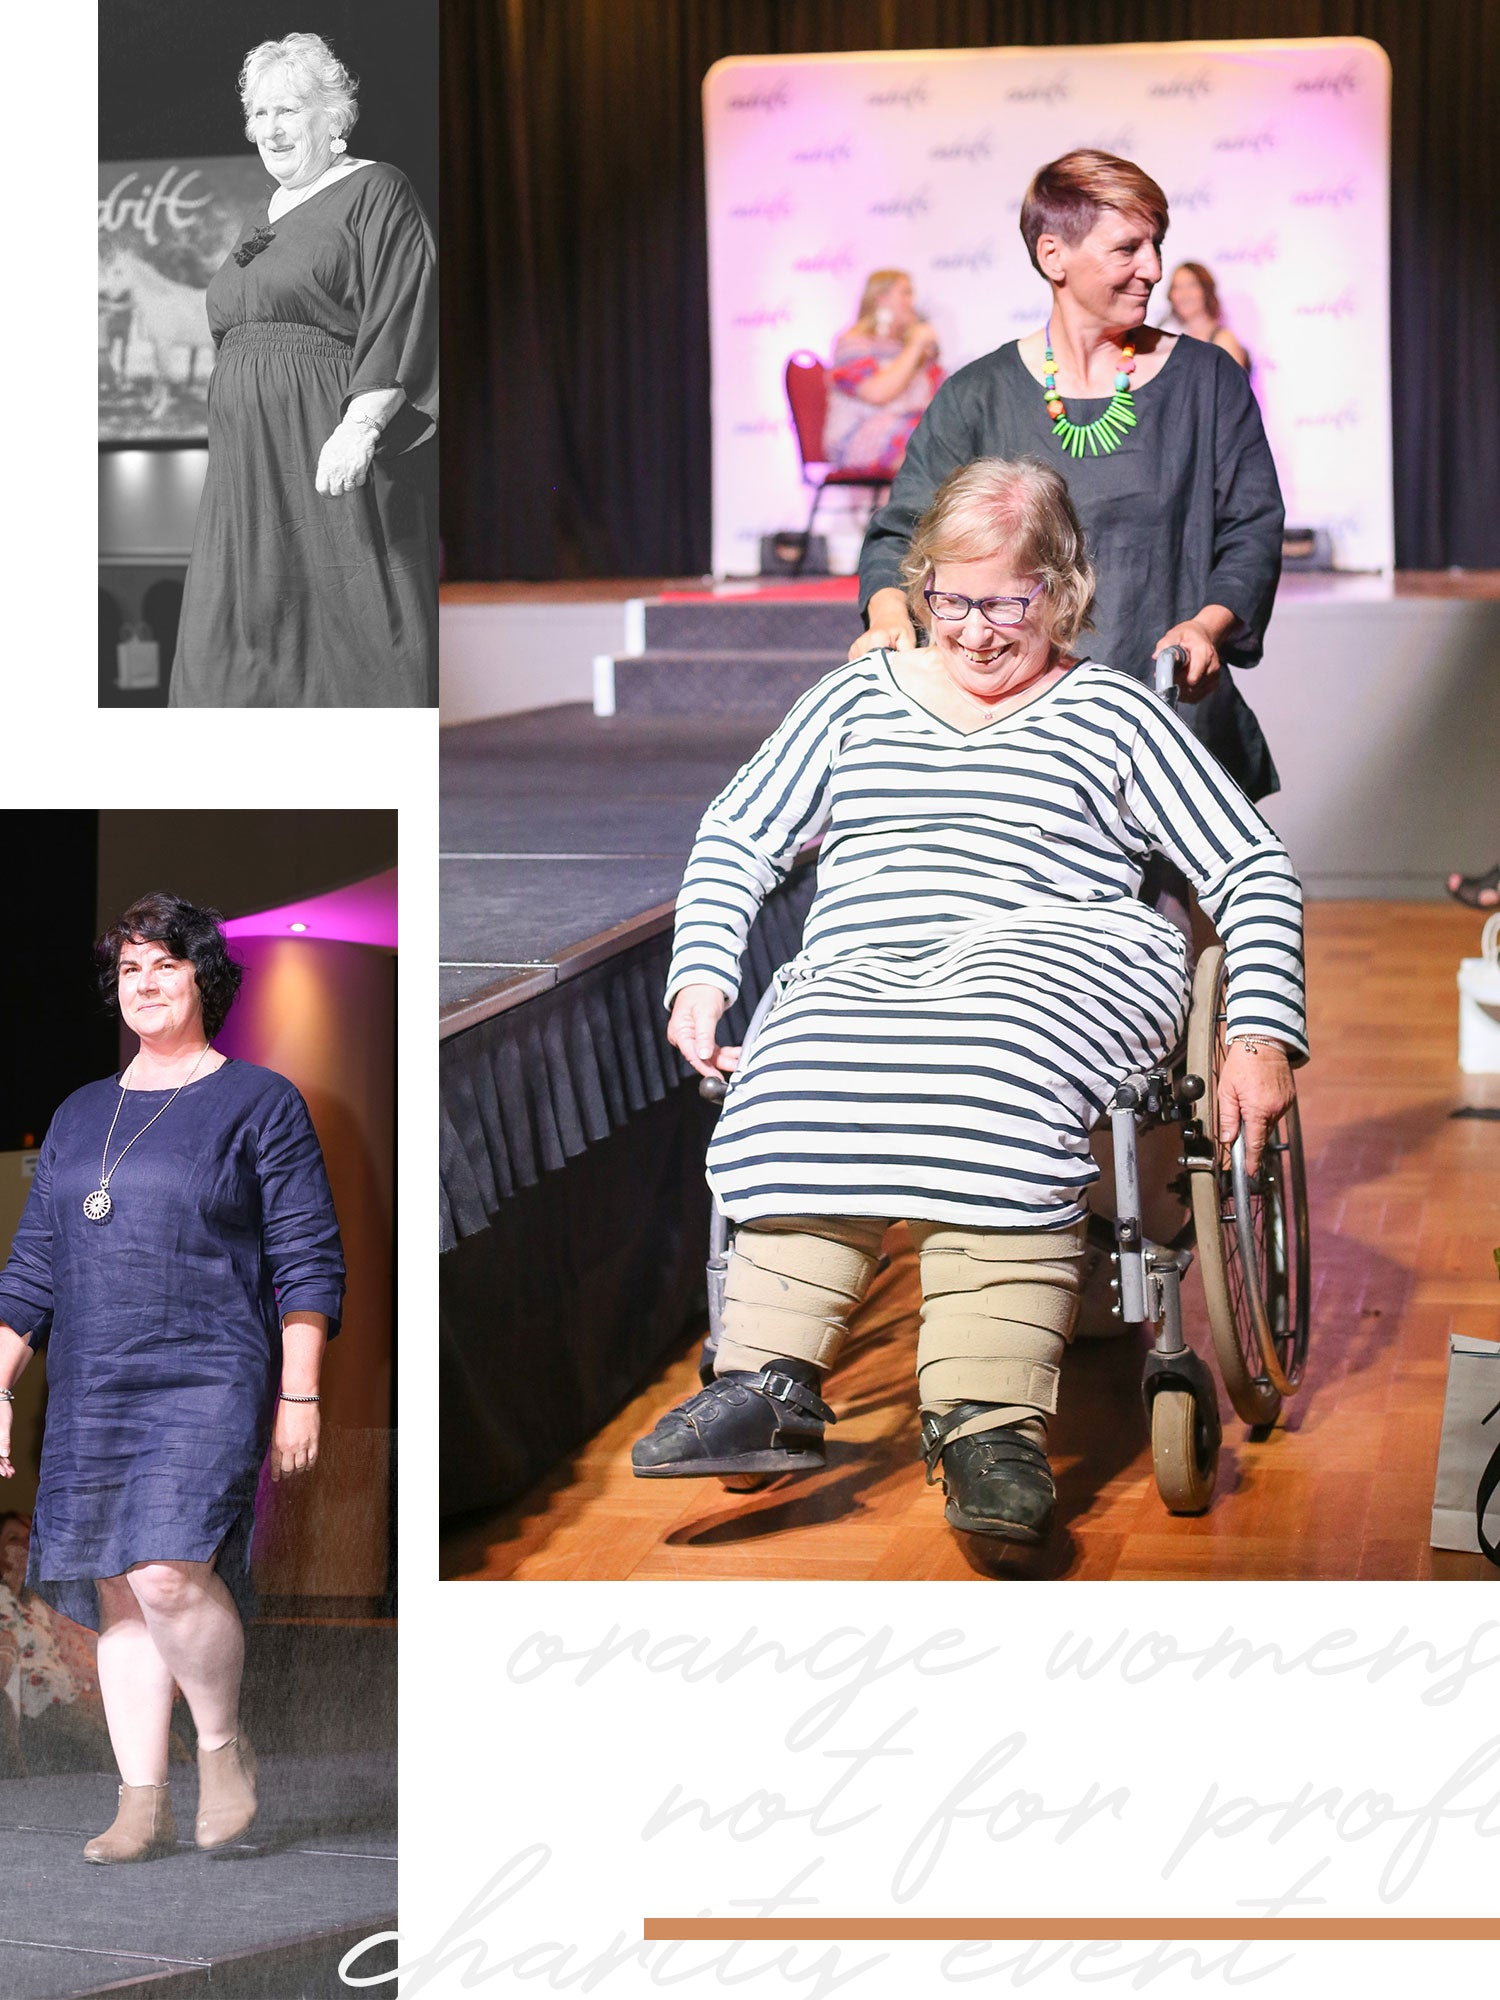 Women in wheelchair assisted by lady walking up and down the catwalk.